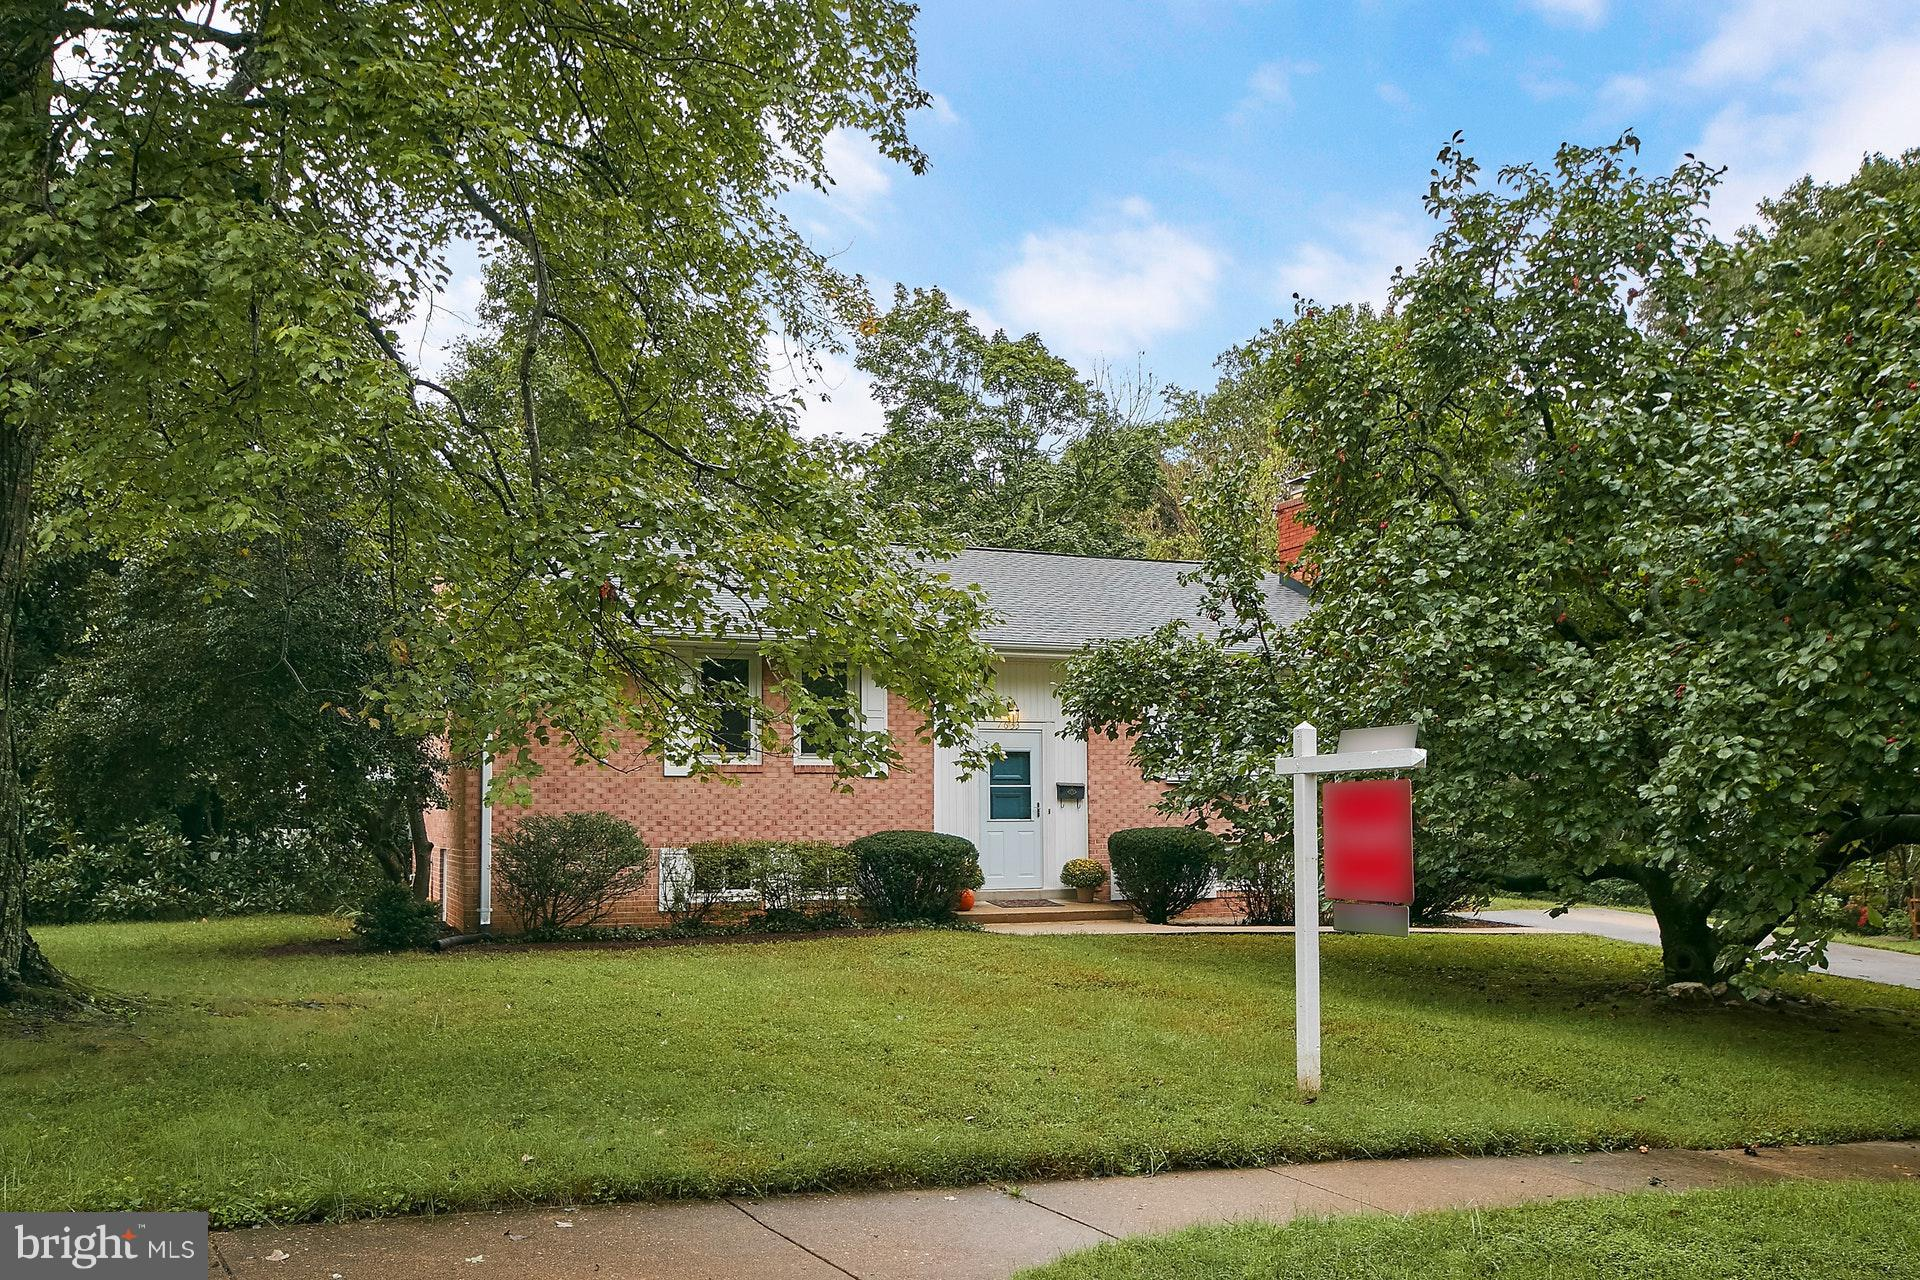 Great potential!! This all brick home is on a great corner lot, freshly painted, hardwood floors on main level, kitchen with corian counters and newer appliances. Fantastic space in the lower level recreation room. Two wood burning fireplaces. Slate patio with privacy wall & attached brick storage shed. Come check out the possibilities!